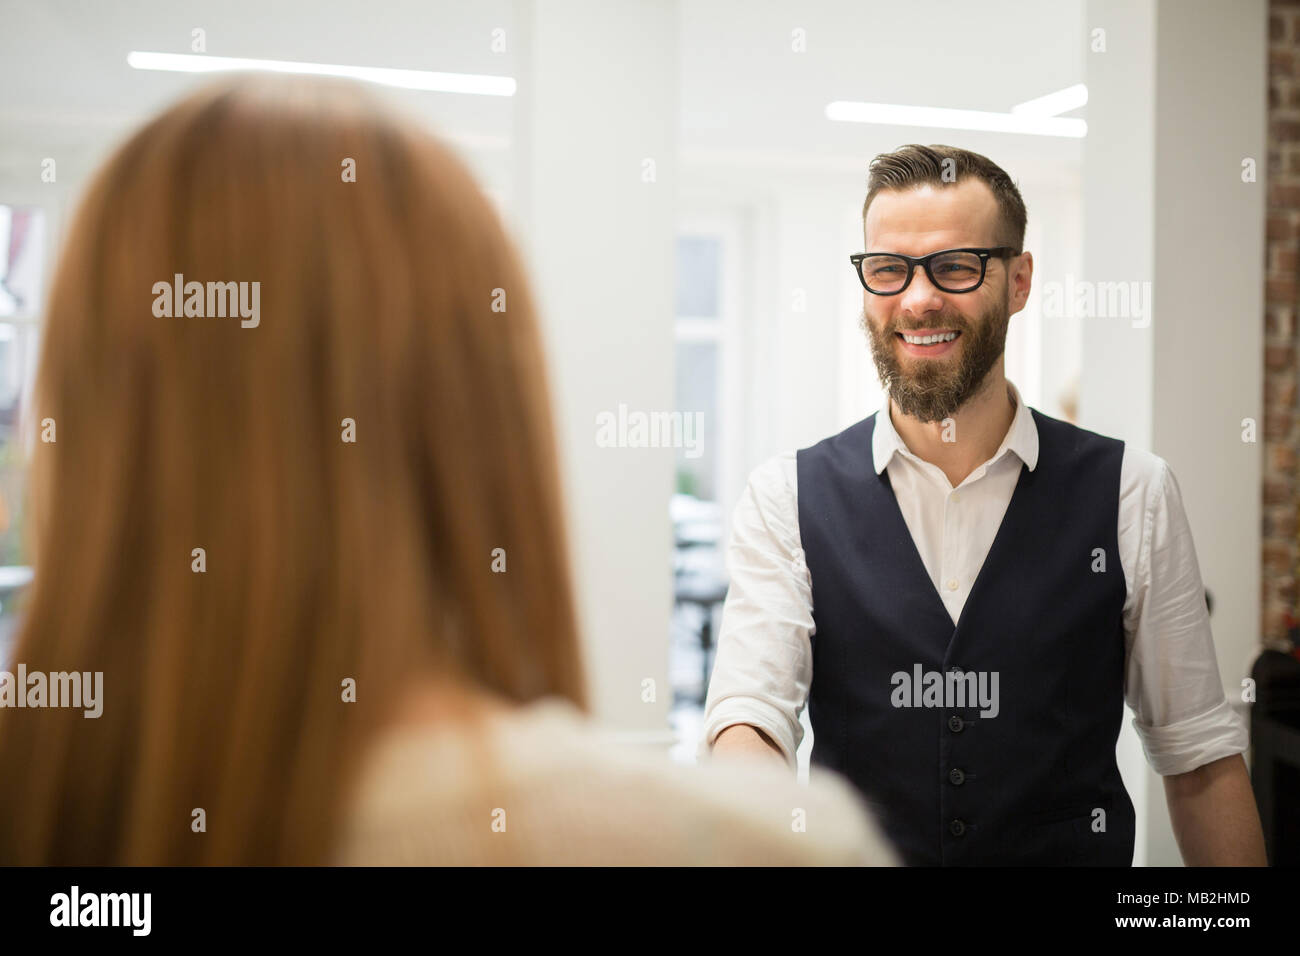 Portrait of happy hairdresser greeting customer at door - Stock Image